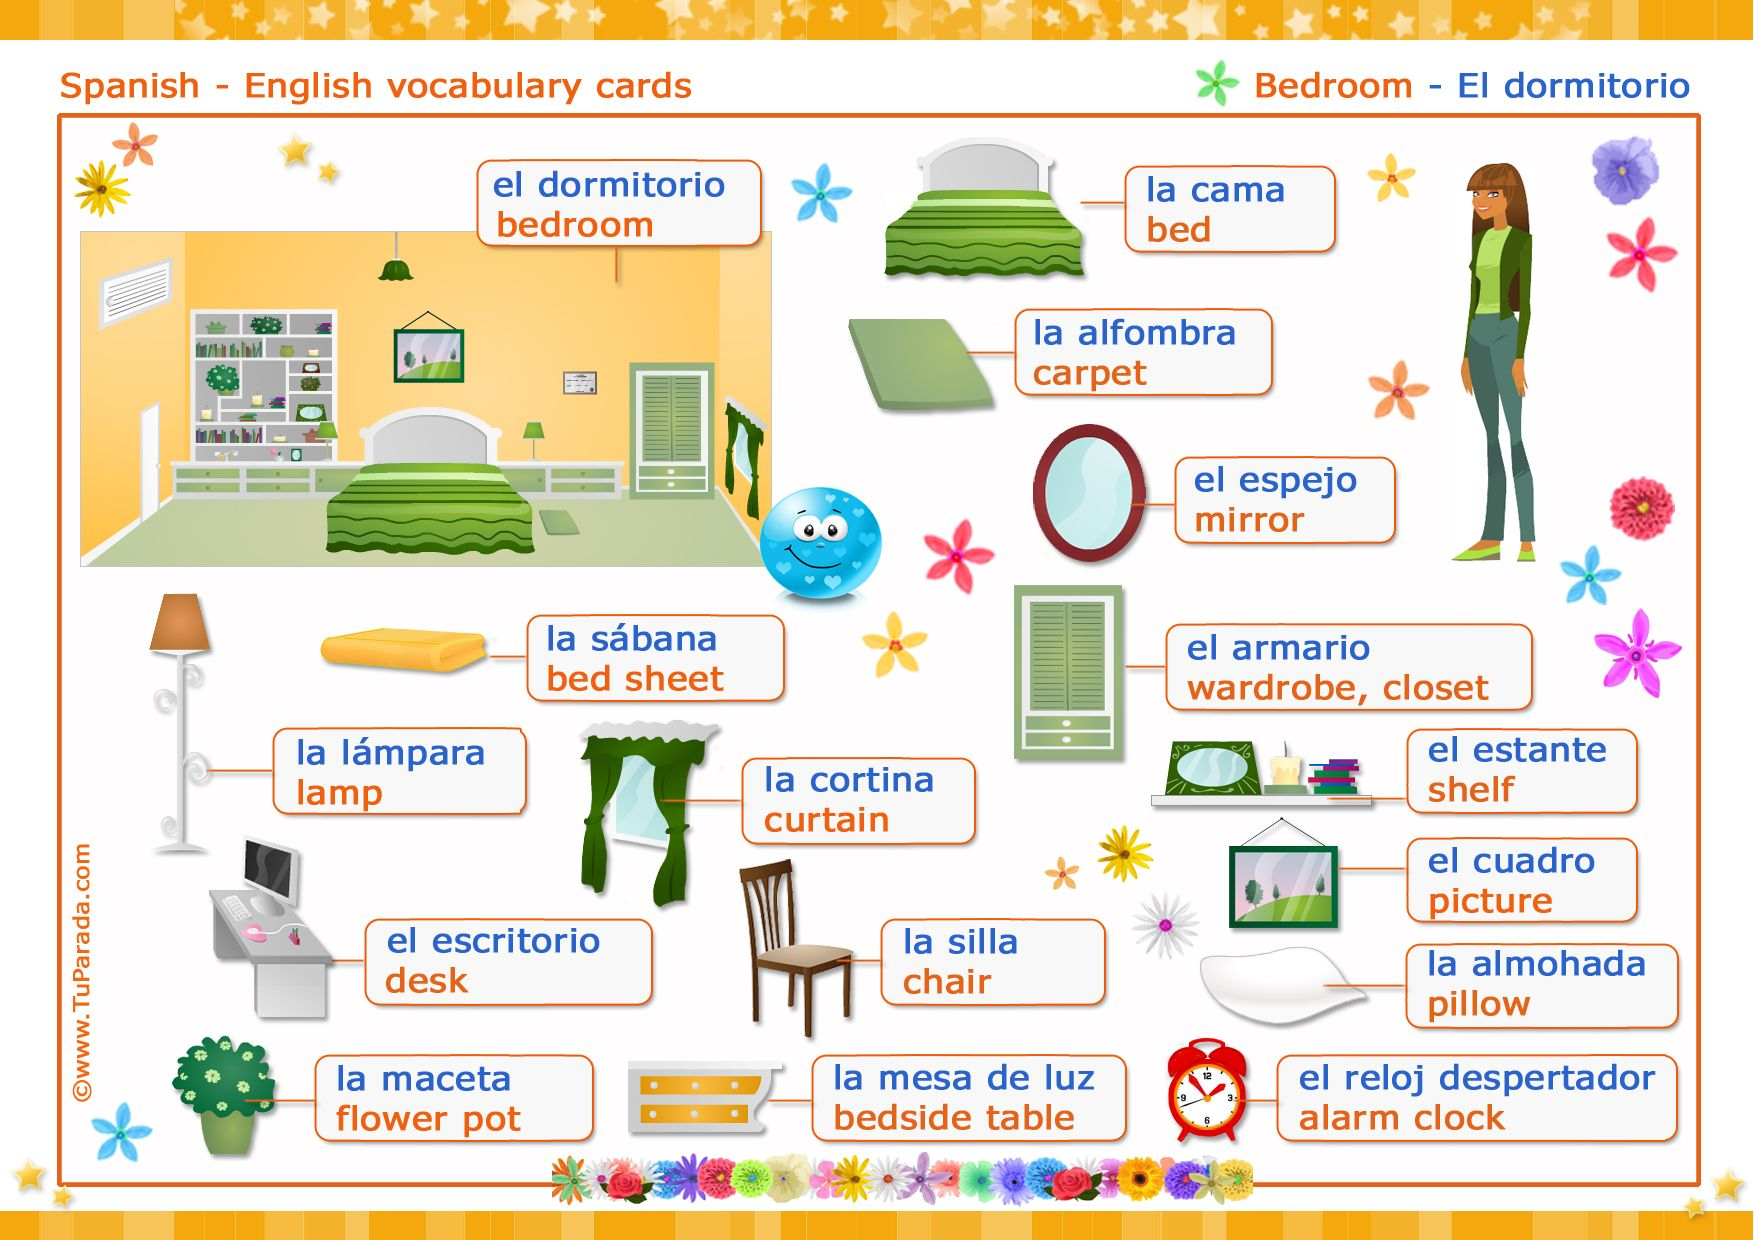 Vocabulario espa ol ingl s el dormitorio the bedroom for Como e living room em portugues